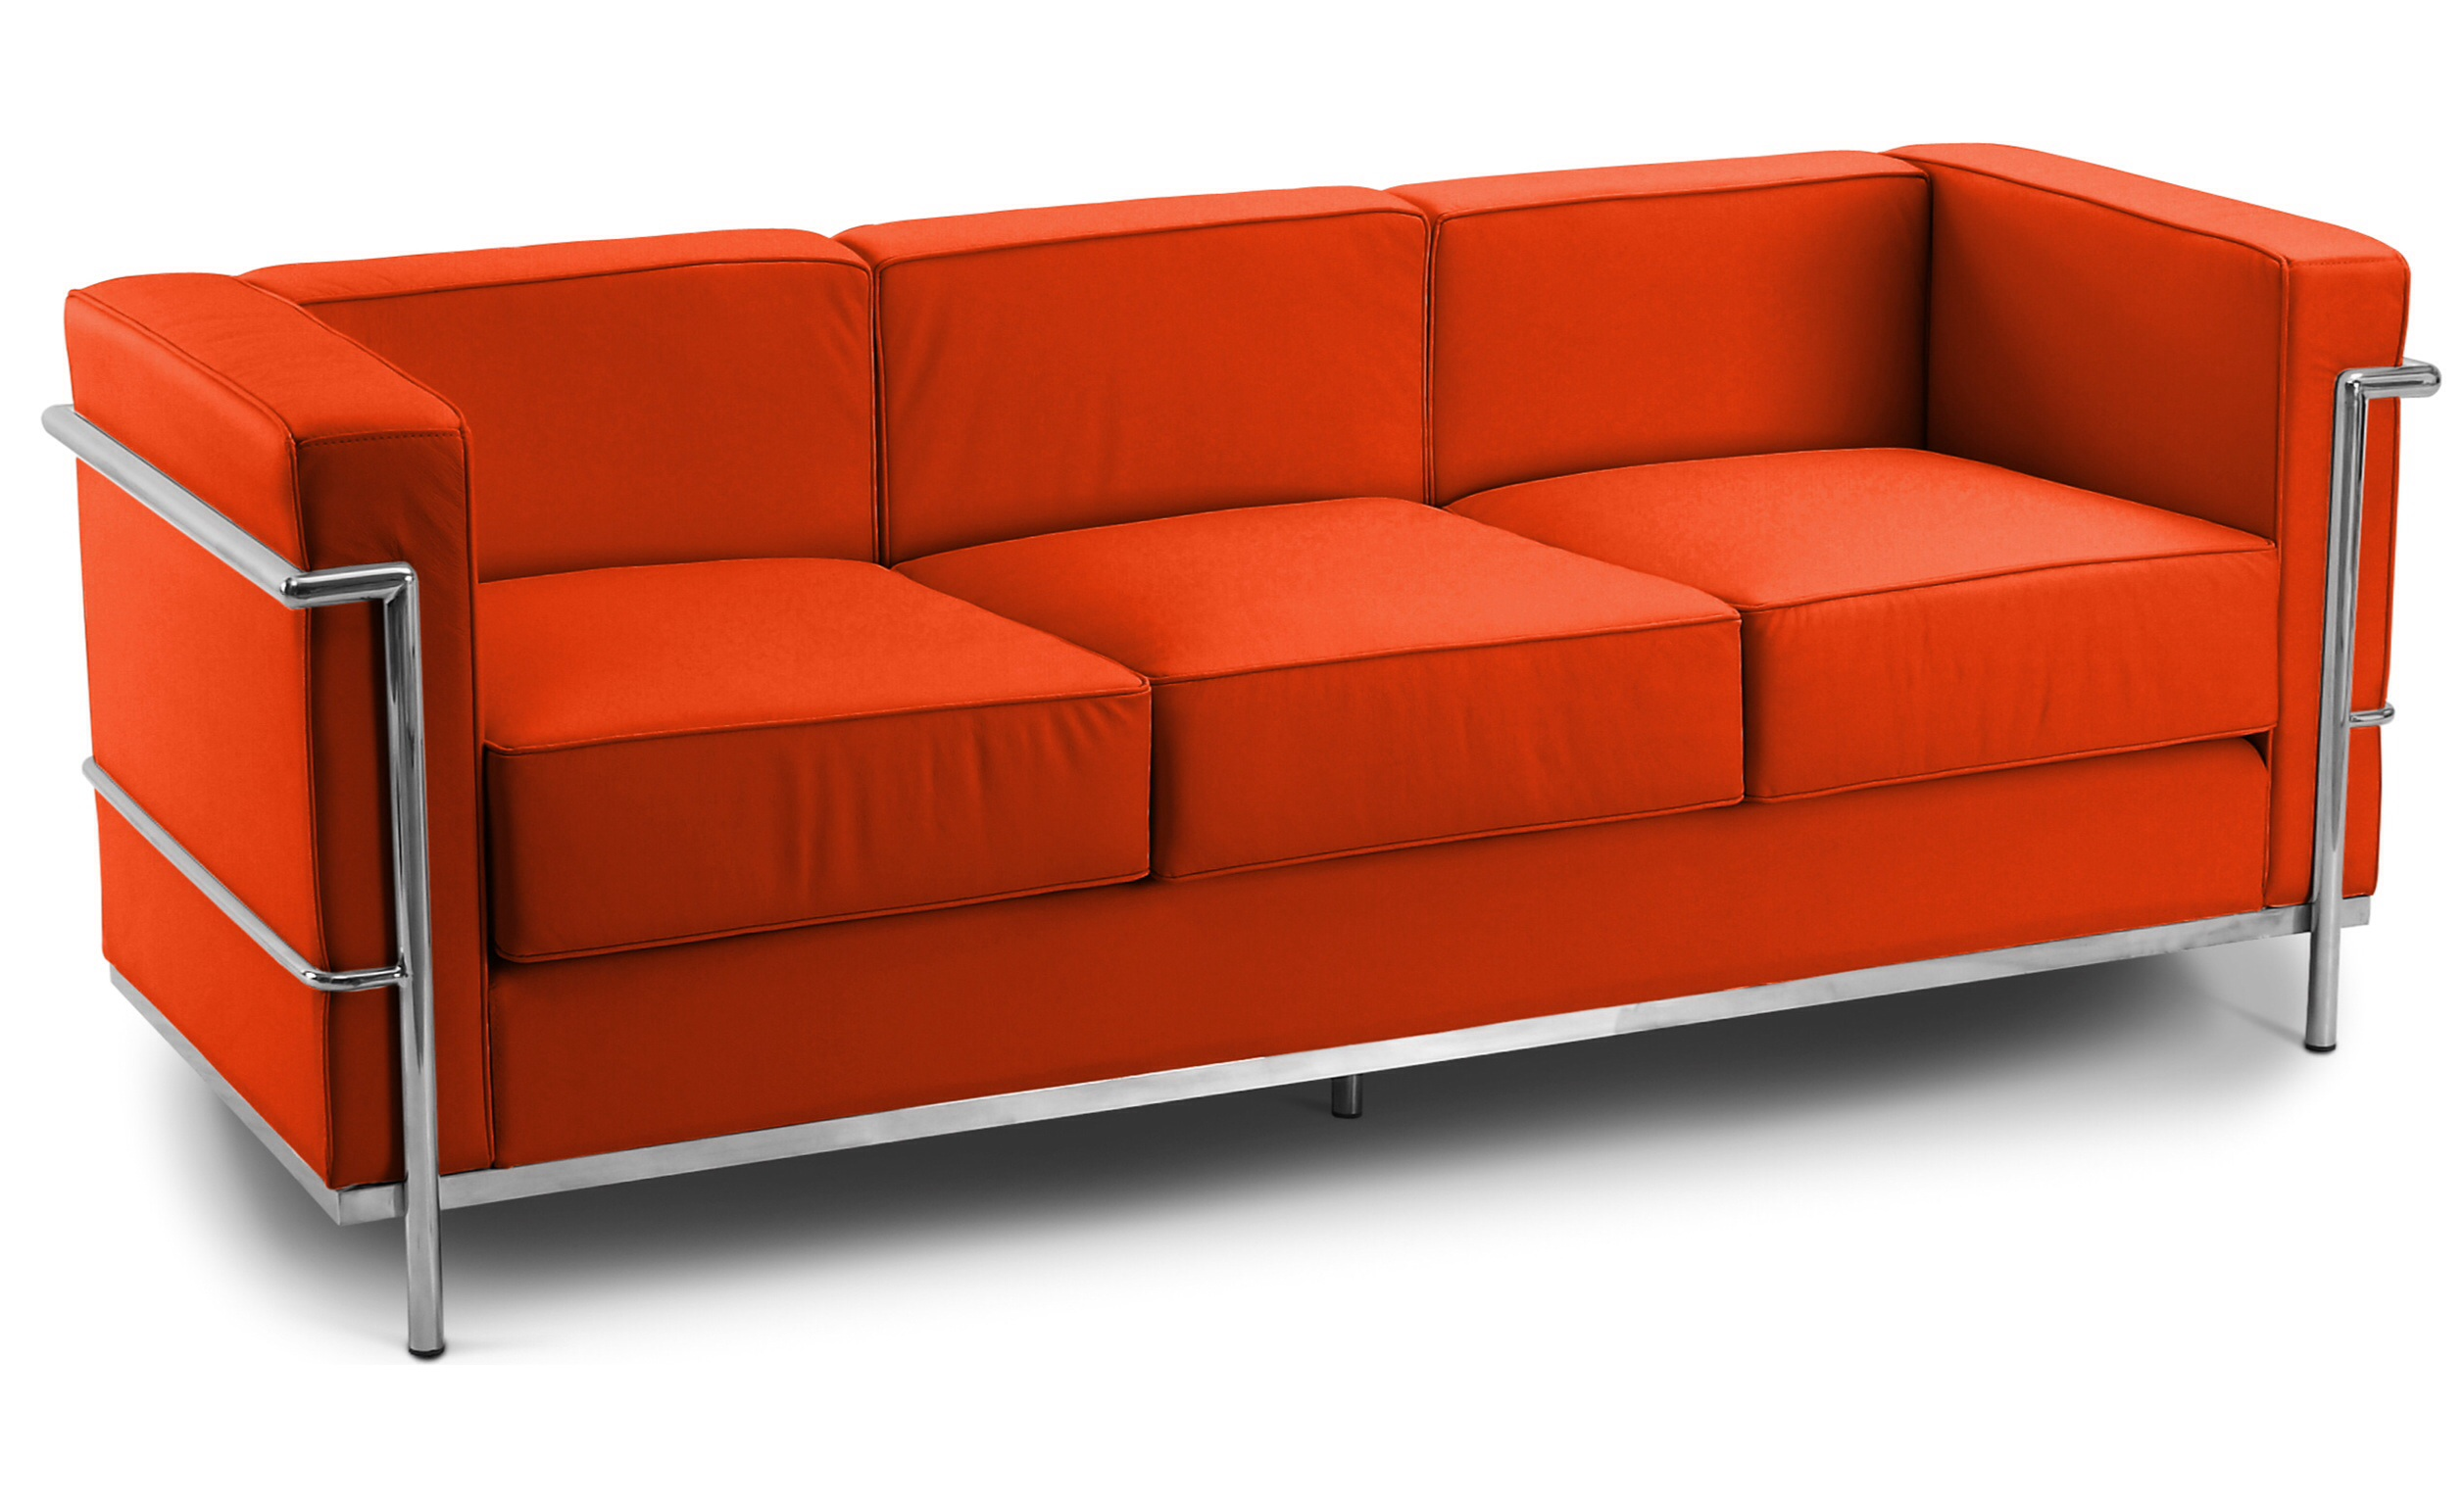 Corbusier 3 Seater Sofa Faux Leather Orange 1960 Wide Specialist Furniture Contracts